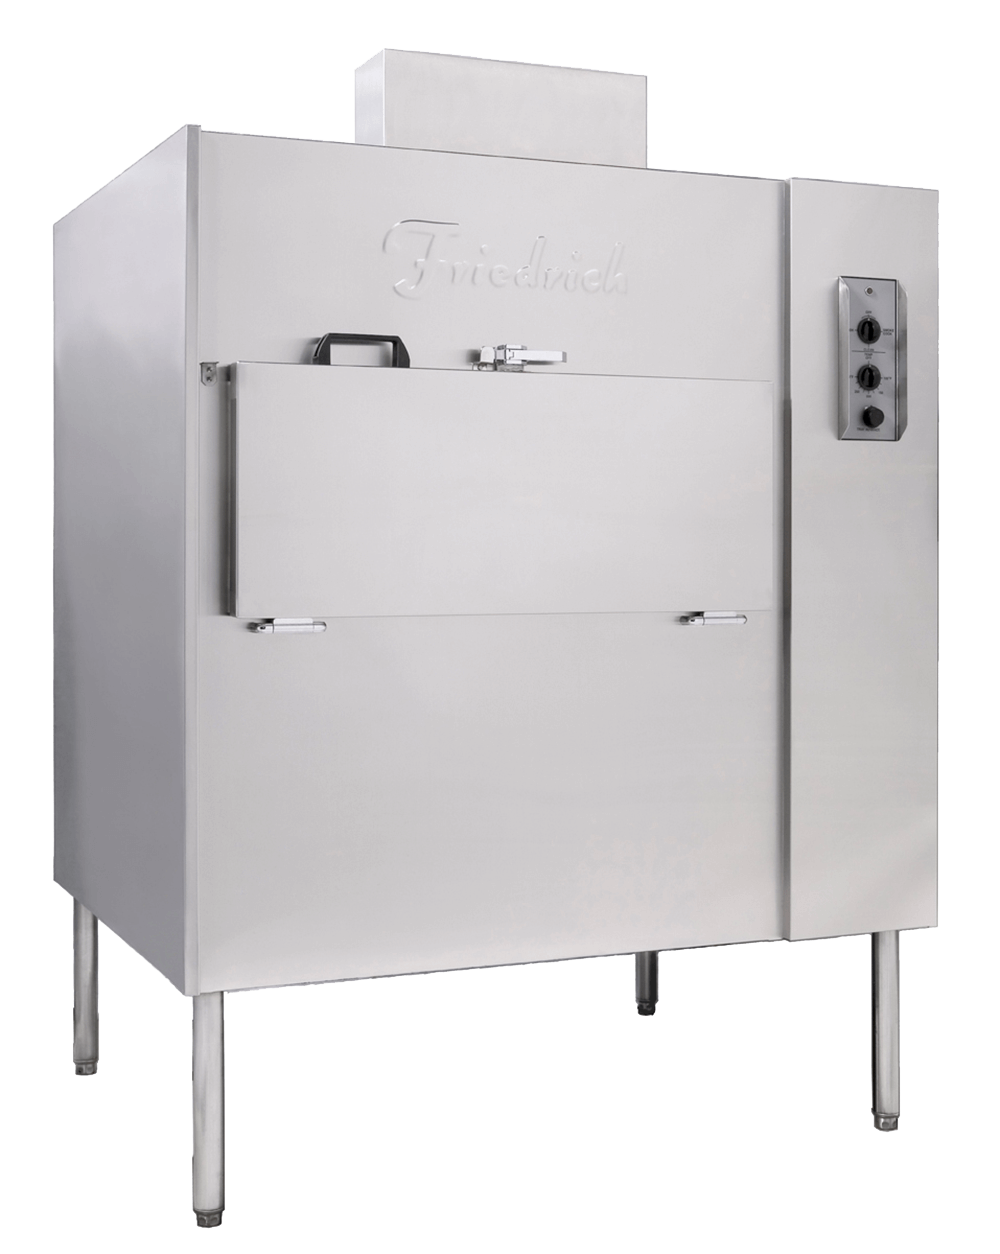 Friedrich Roasters Smokers Fmp 400 Freestandingunit Clsd